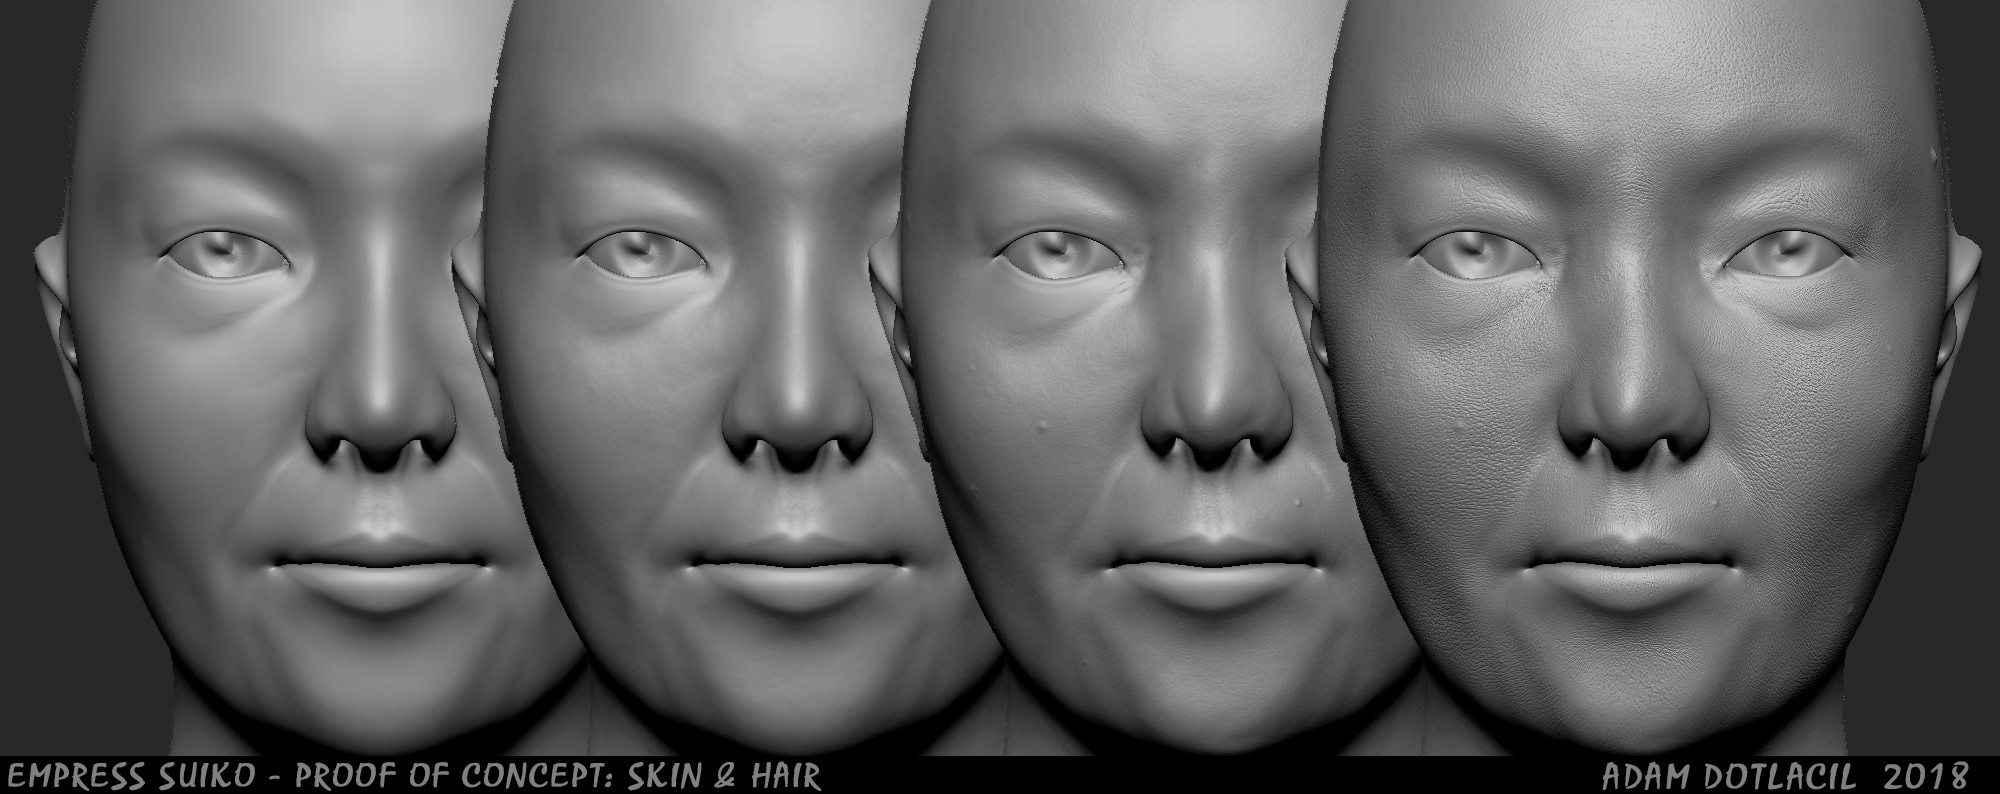 Zbrush layers of skin alterations  (Base / Random noise / Asymmetry details / Tertiary details; pores and wrinkles)